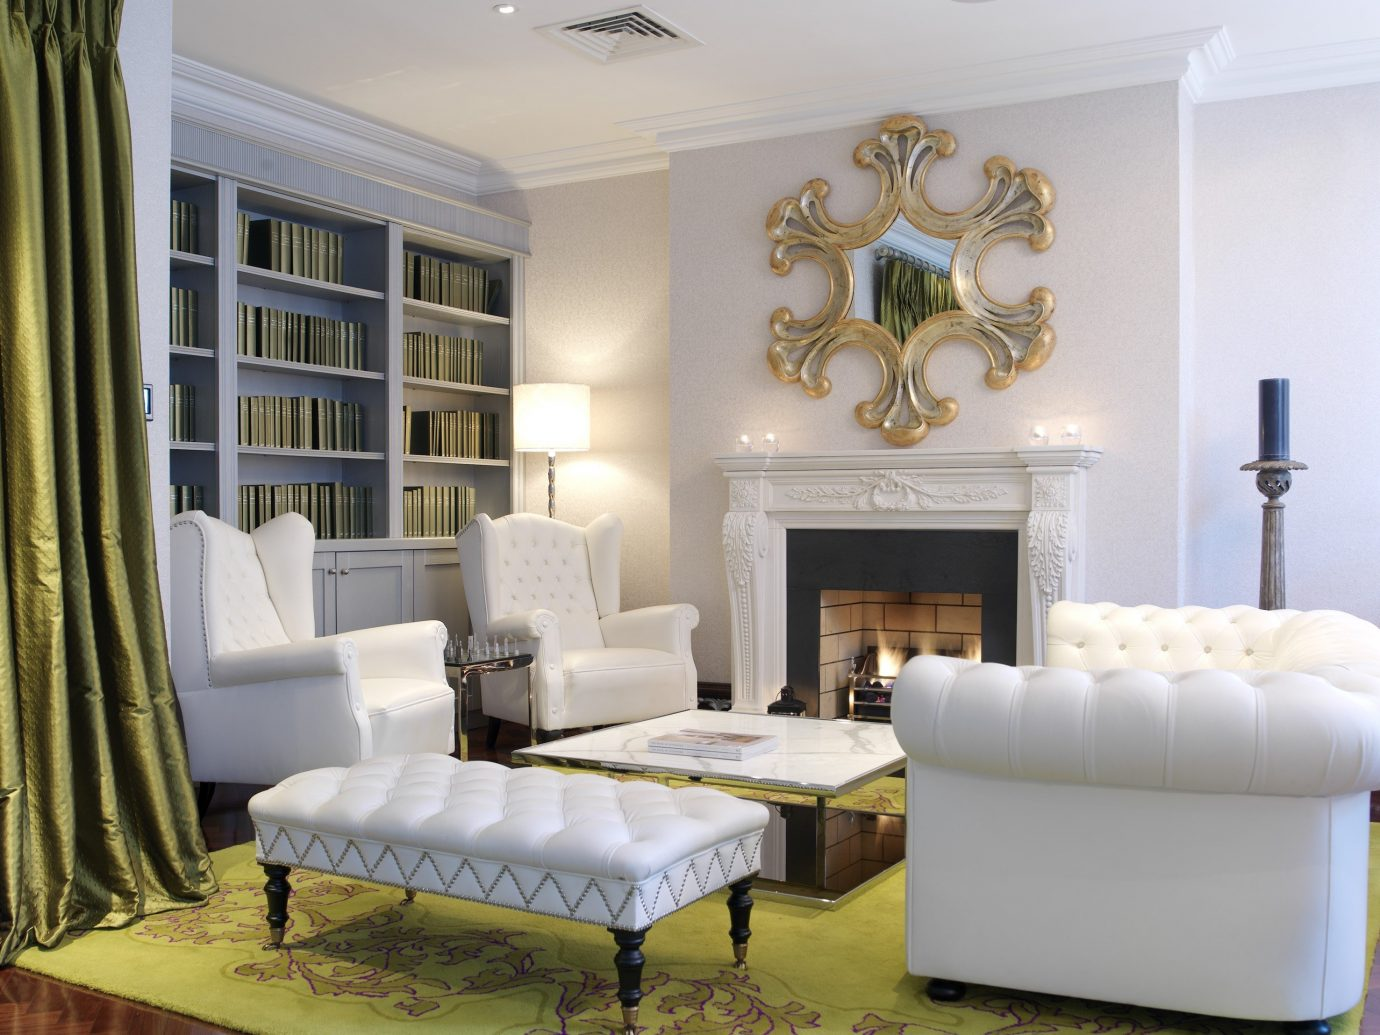 Dublin Hotels Ireland indoor living room floor wall room interior design ceiling Living home couch furniture bed interior designer table bed frame loveseat window decorated Bedroom several